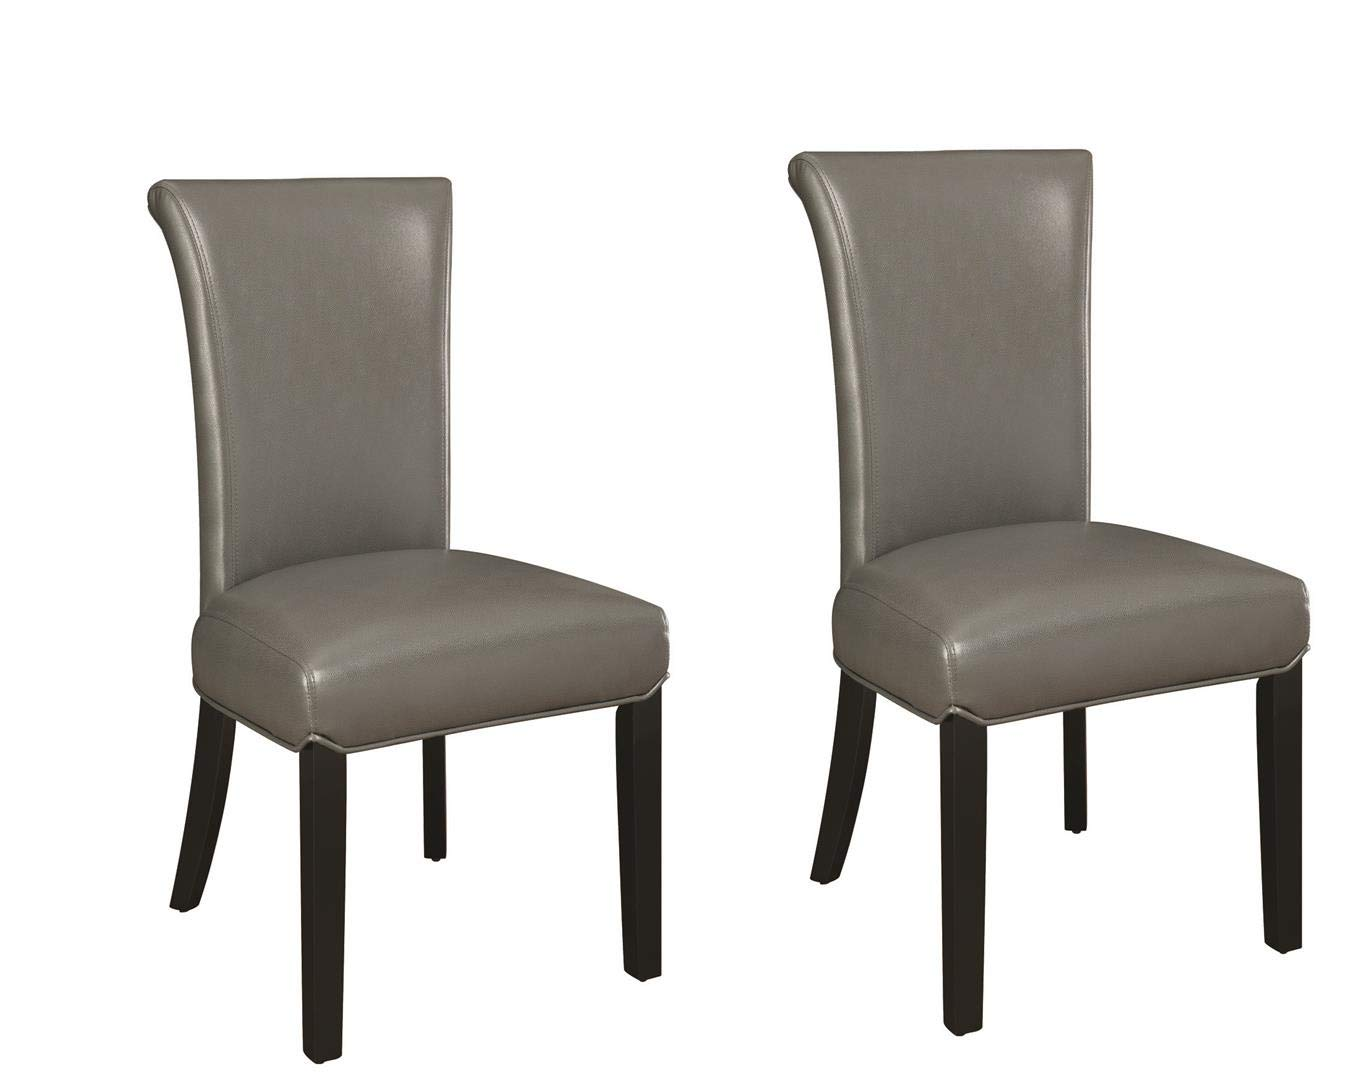 Newbridge Upholstered Side Chairs Black and Grey Set of 2